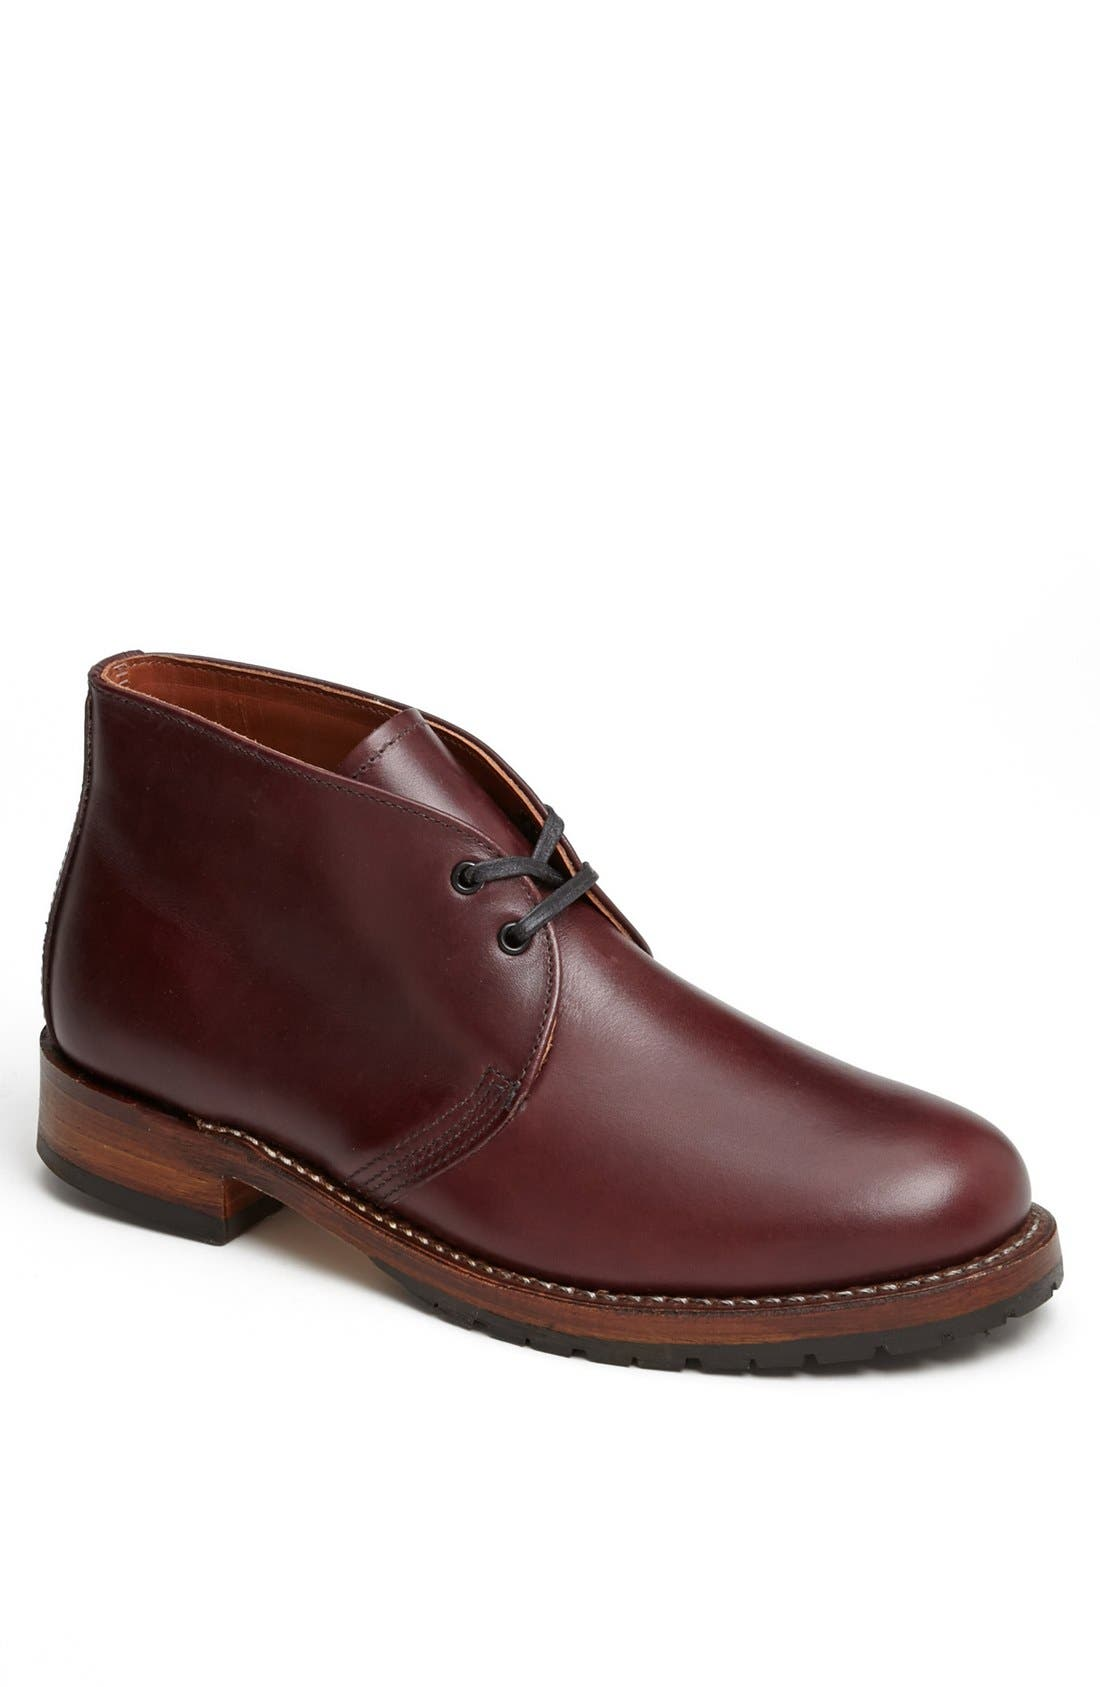 Main Image - Red Wing 'Beckman' Chukka Boot (Online Only)